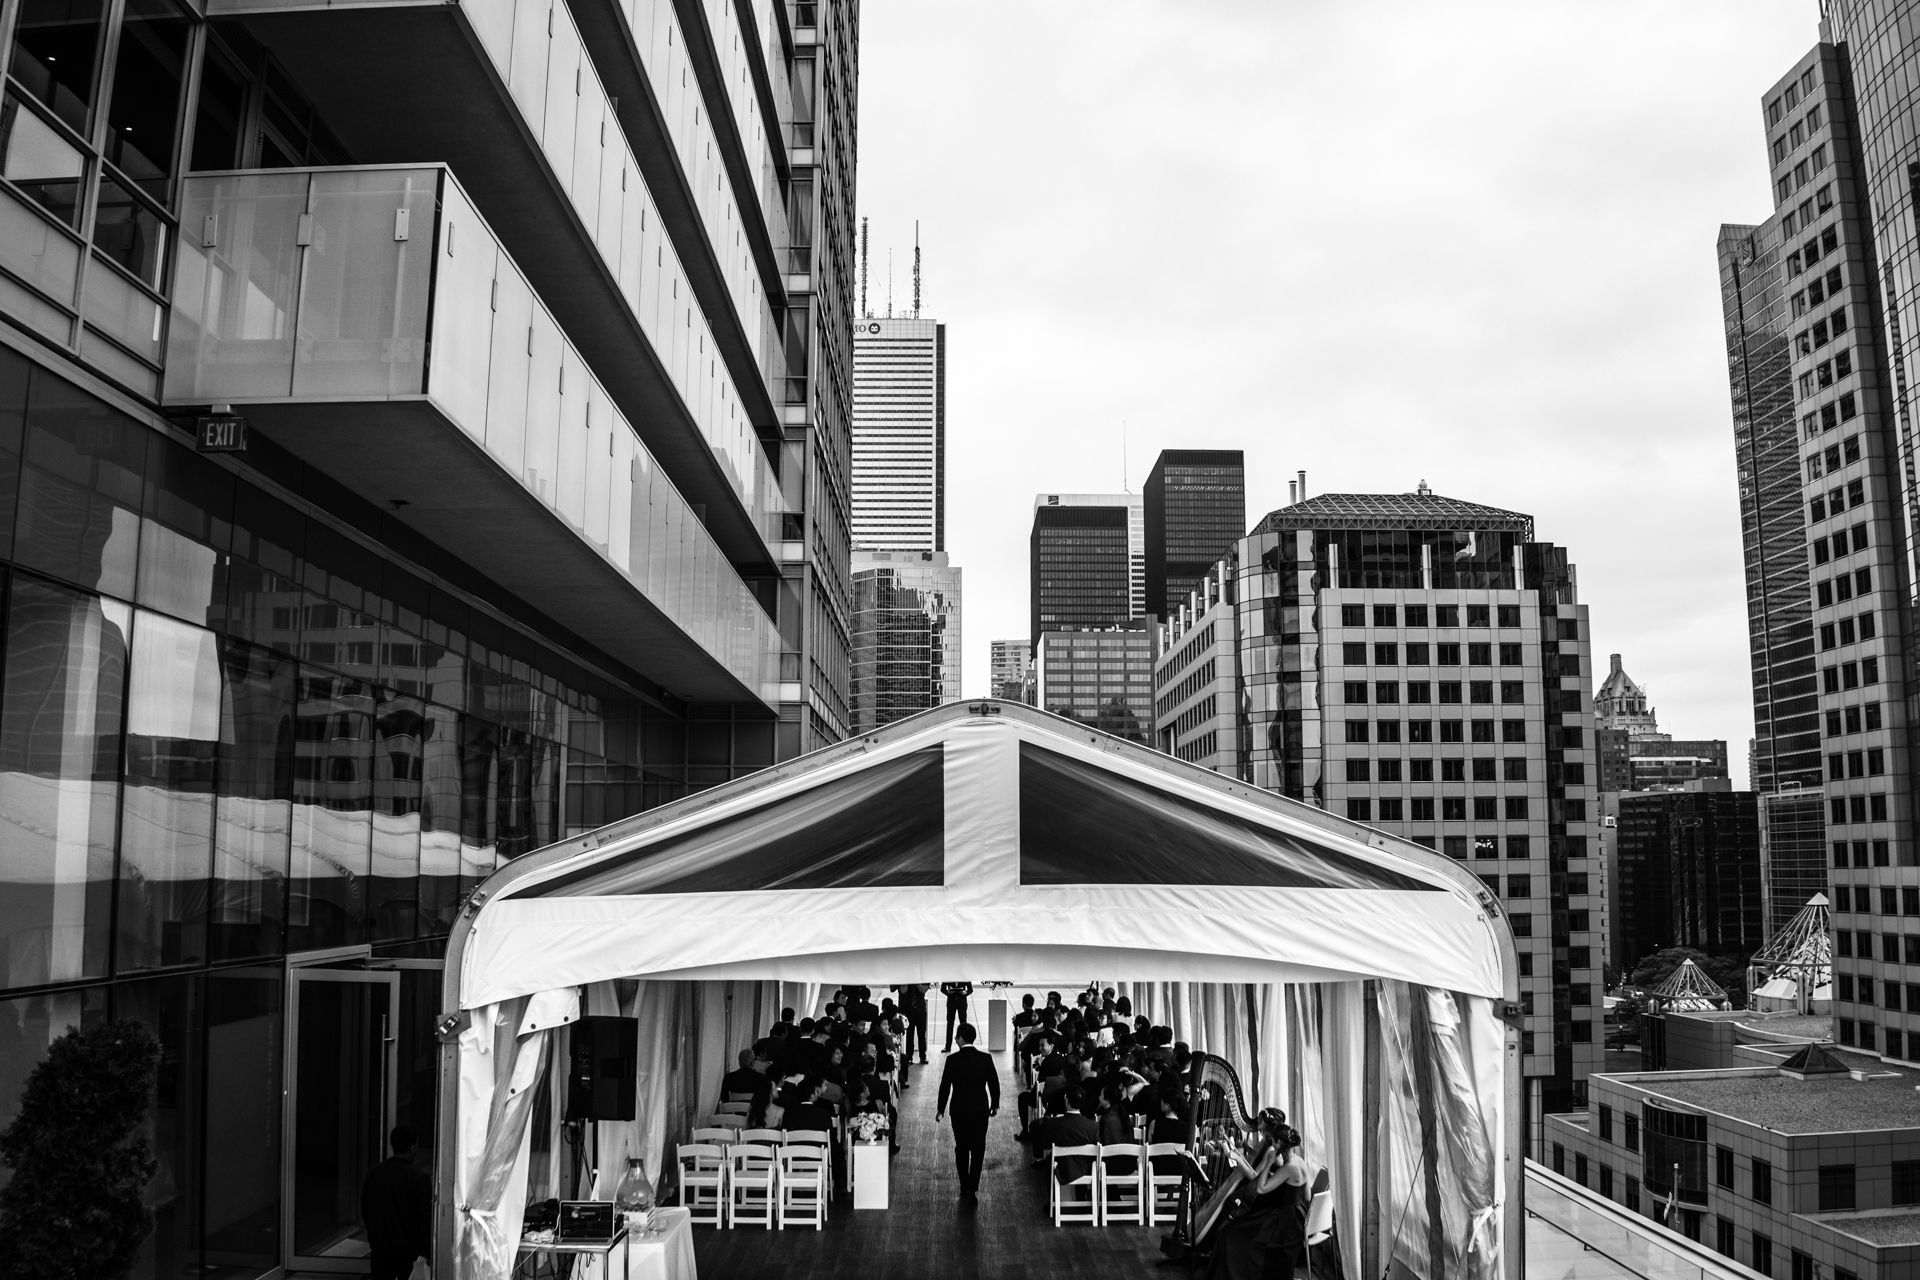 Urban, city tent over the groom wakling into the ceremony location - Tent wedding photography